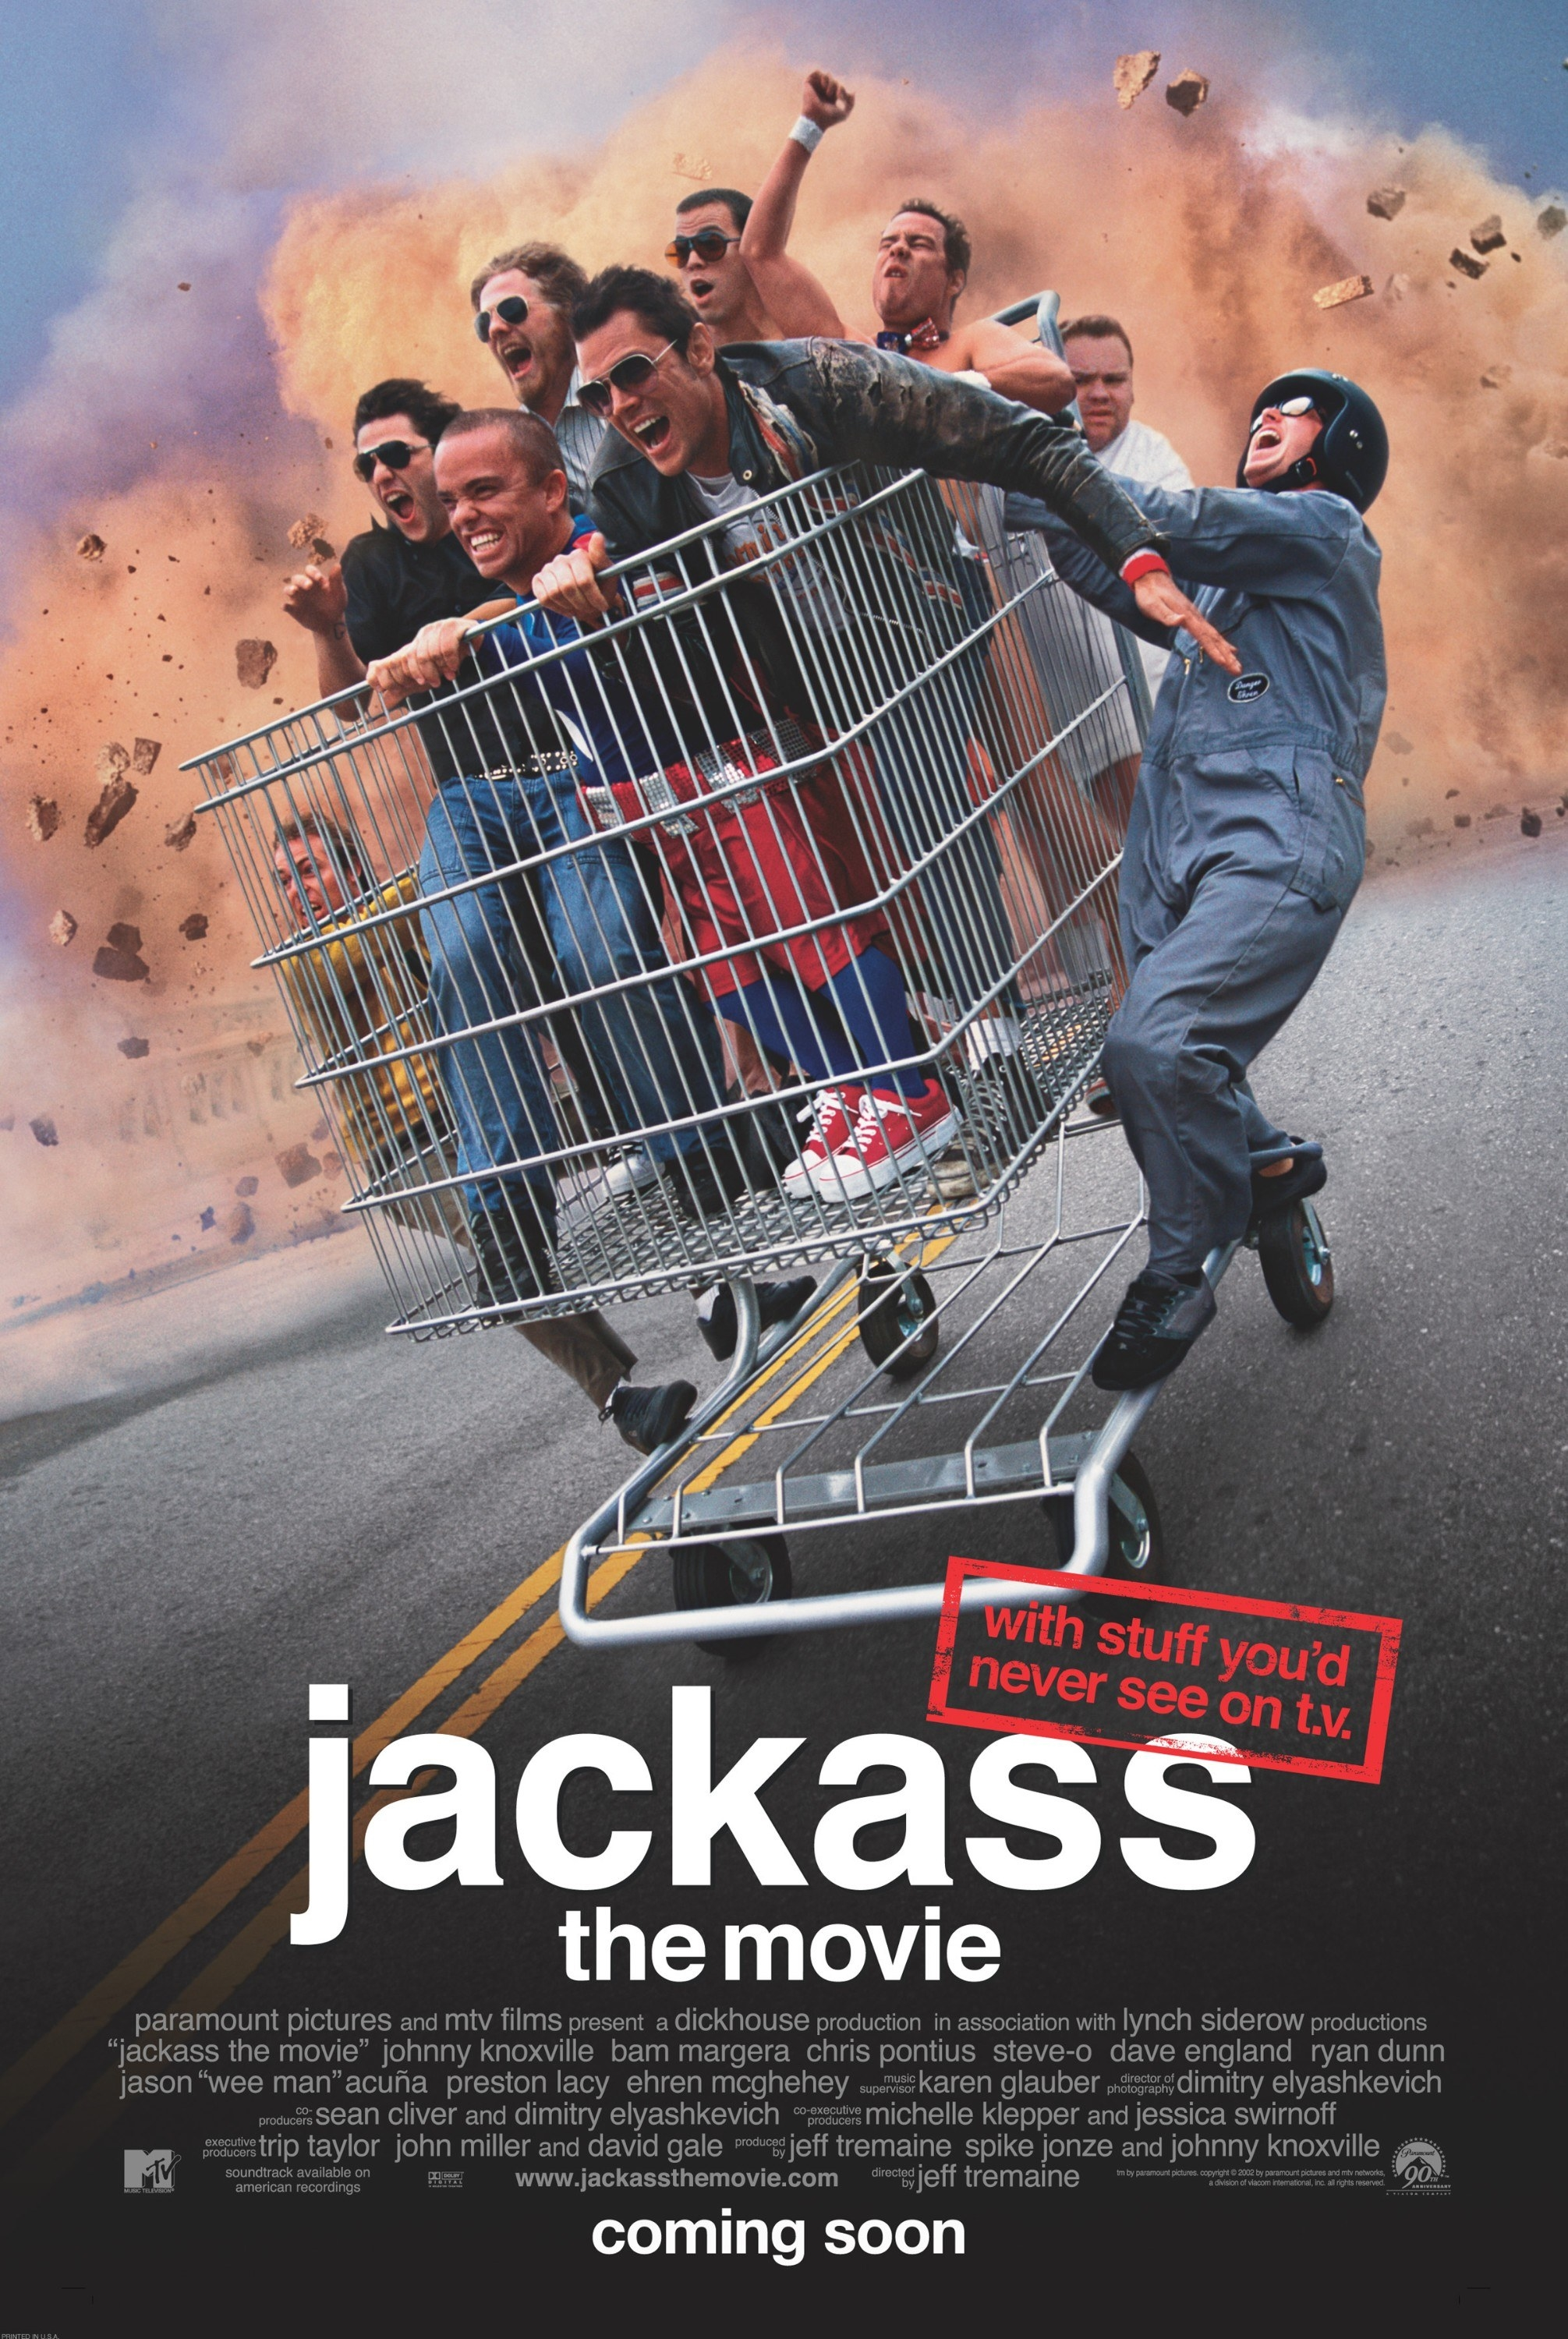 The poster for Jackass the movie